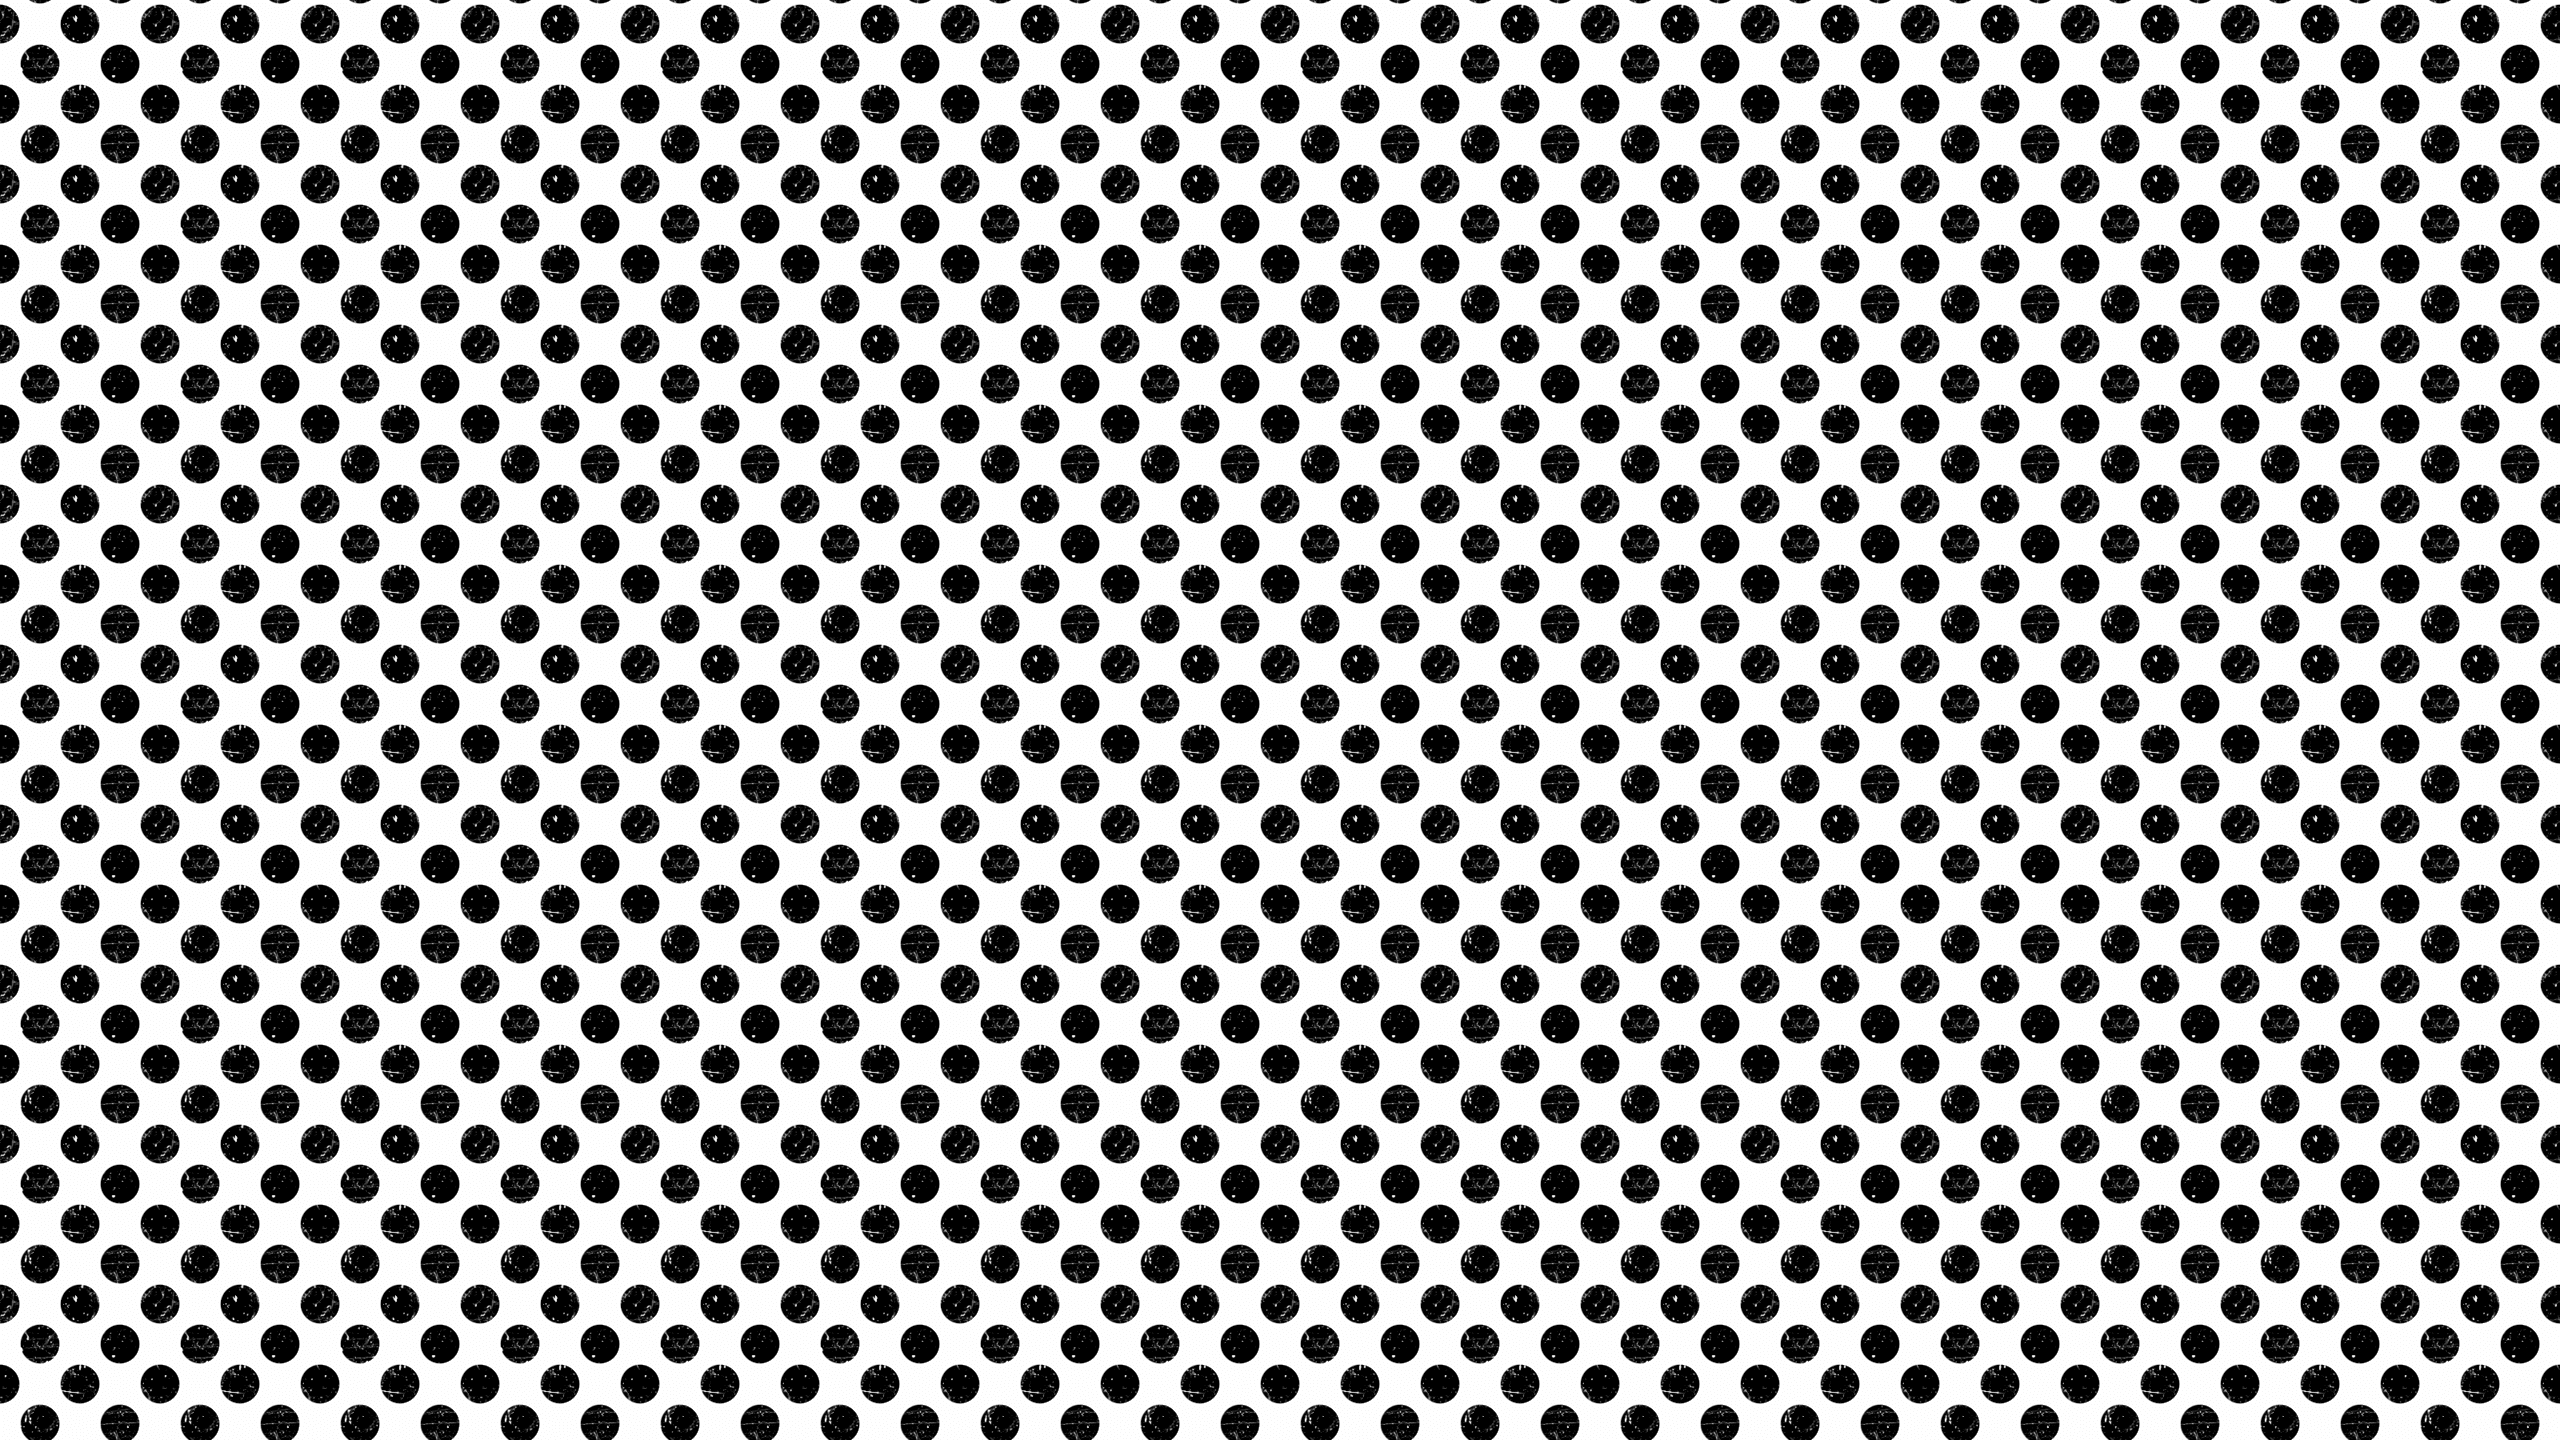 Dots Background Transparent Png Stickpng